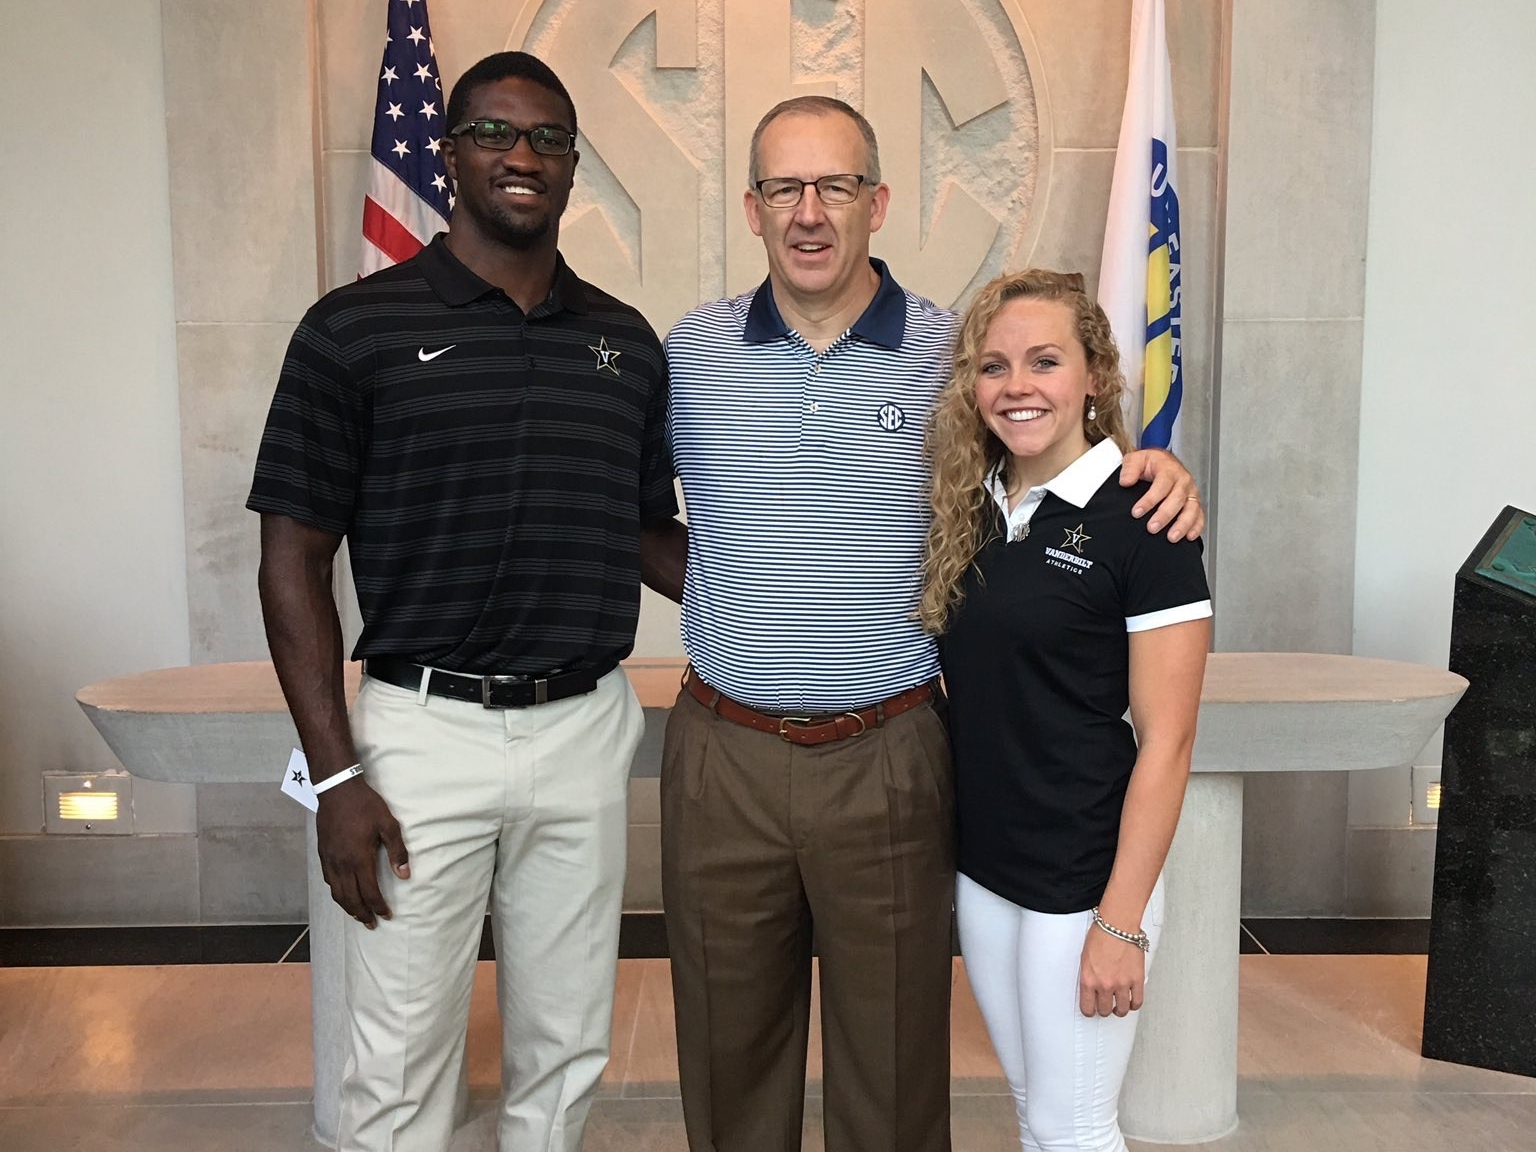 Student Athlete Advisory Committee (SAAC) - PRESIDENT, FOOTBALL REPRESENTATIVEServed as a liaison between Vanderbilt Student-Athletes and University Administration.